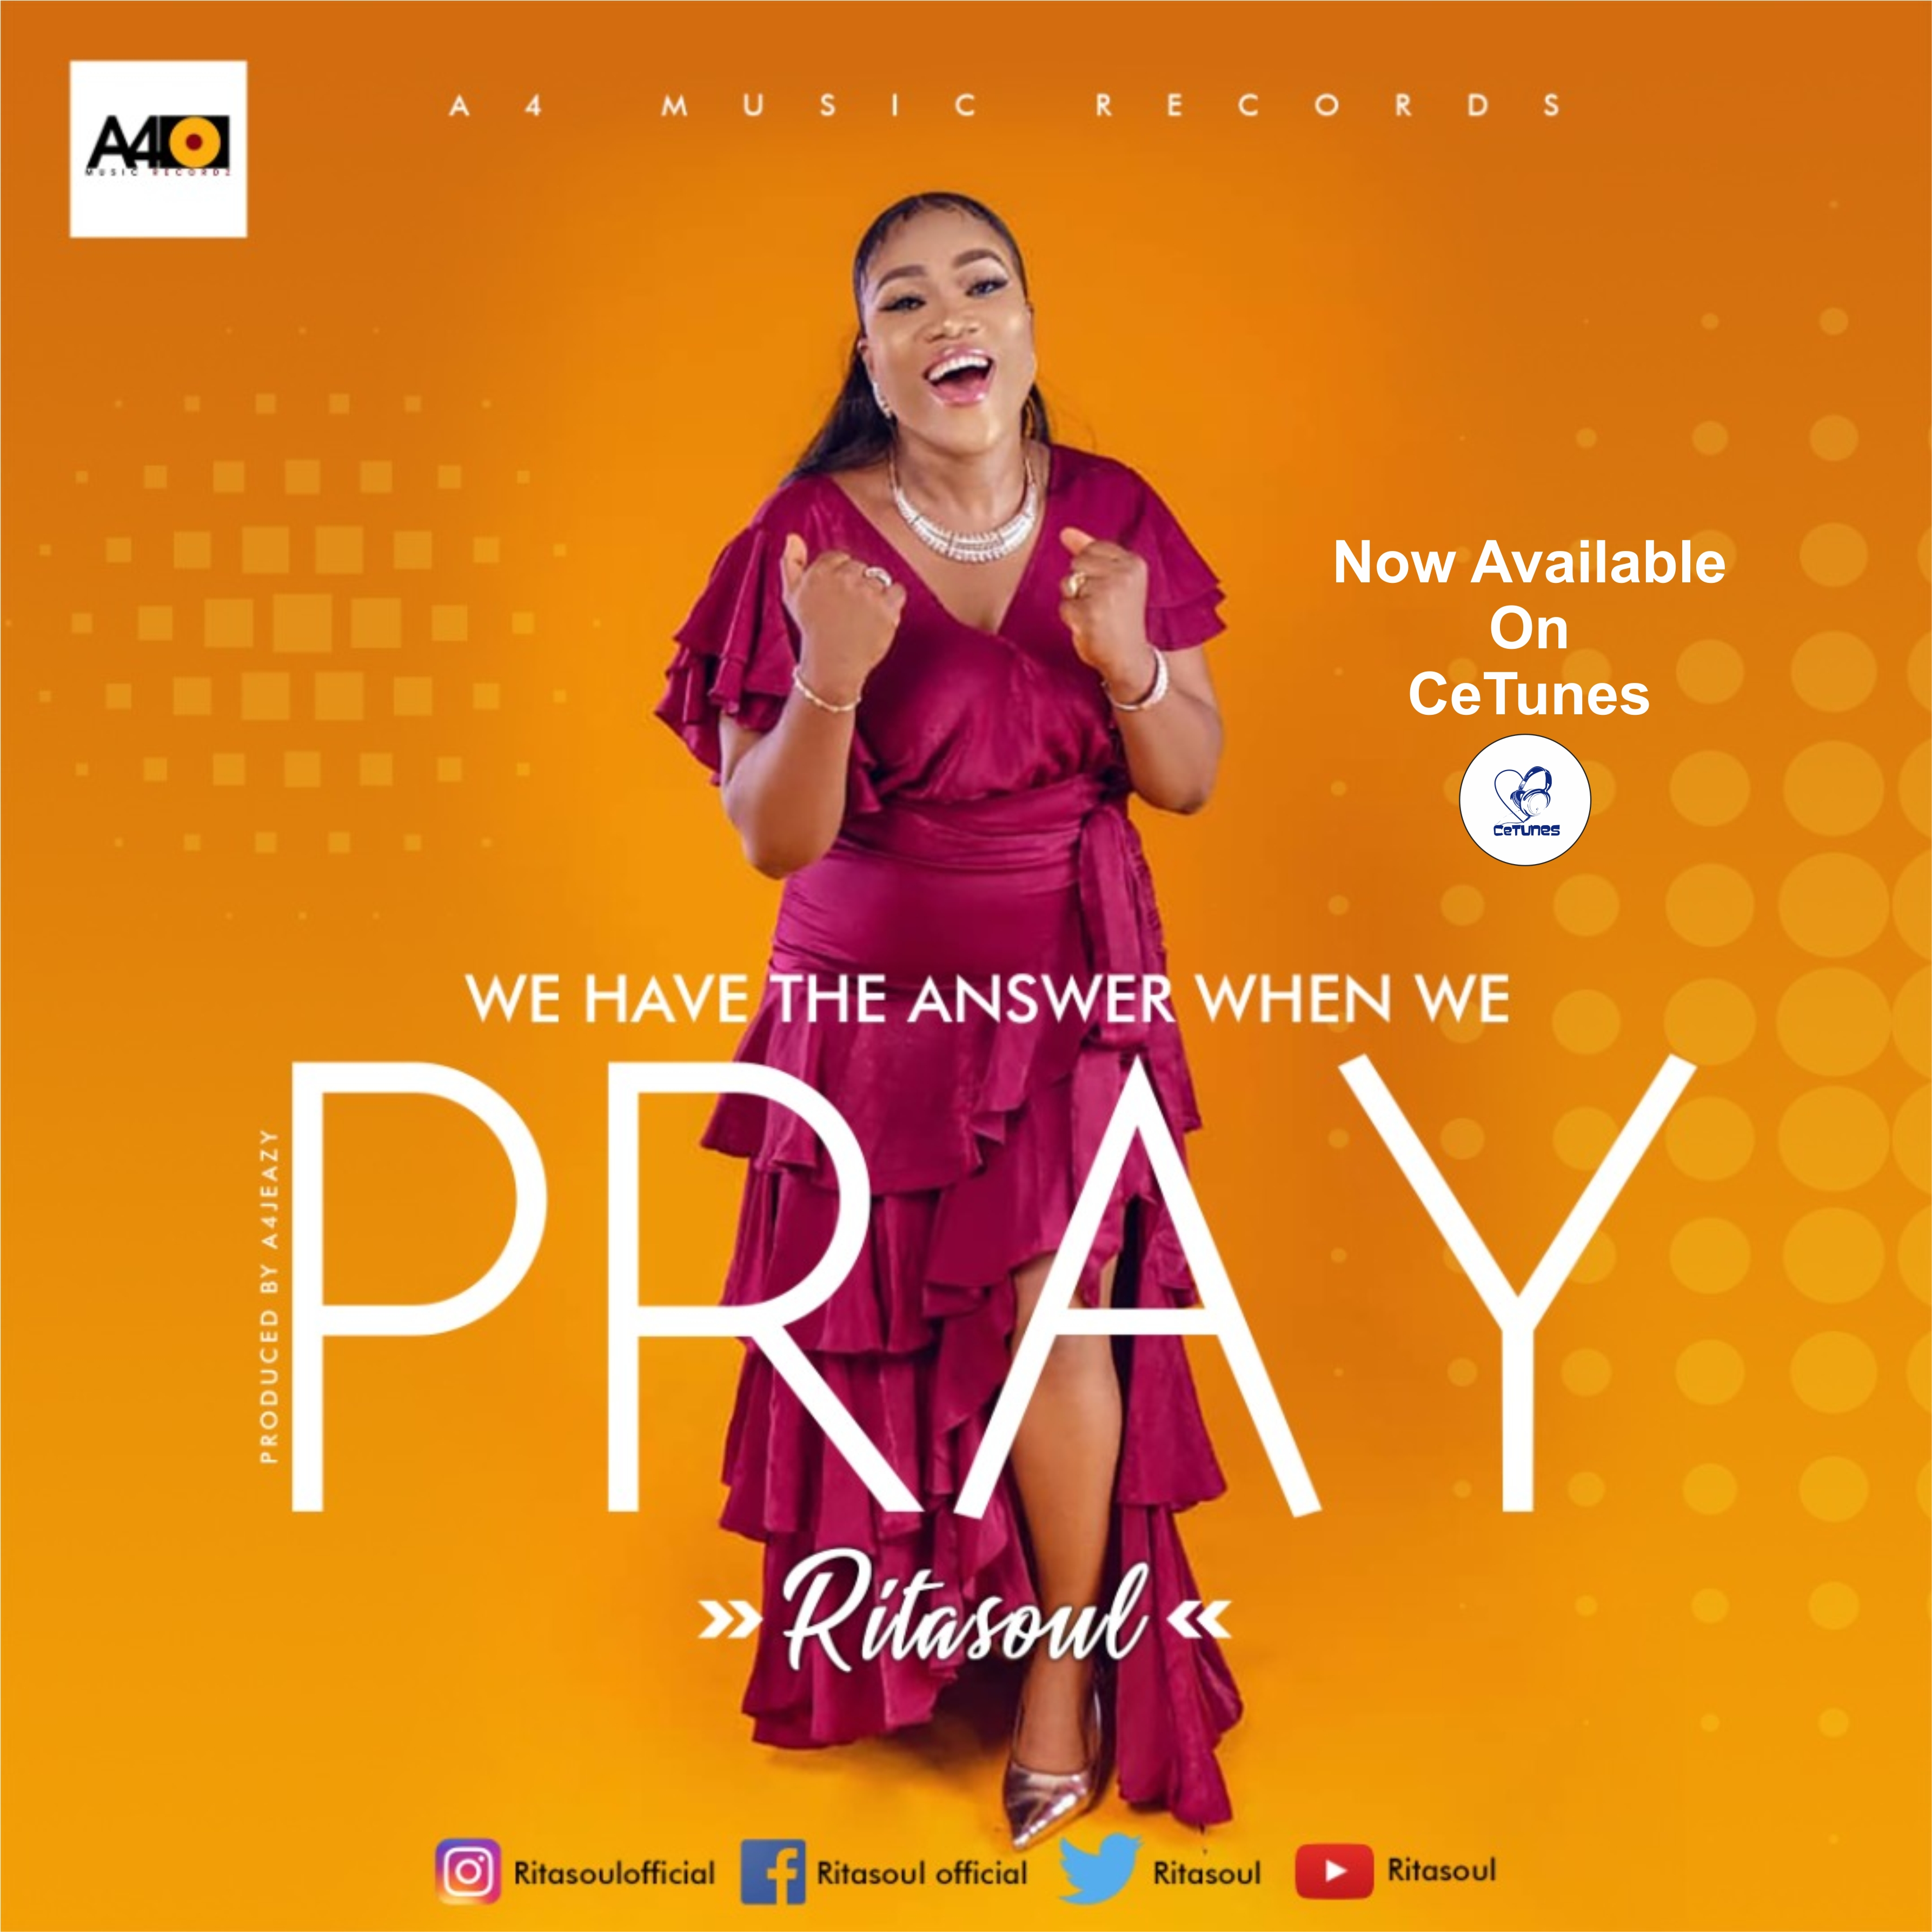 We Have The Answer When We Pray